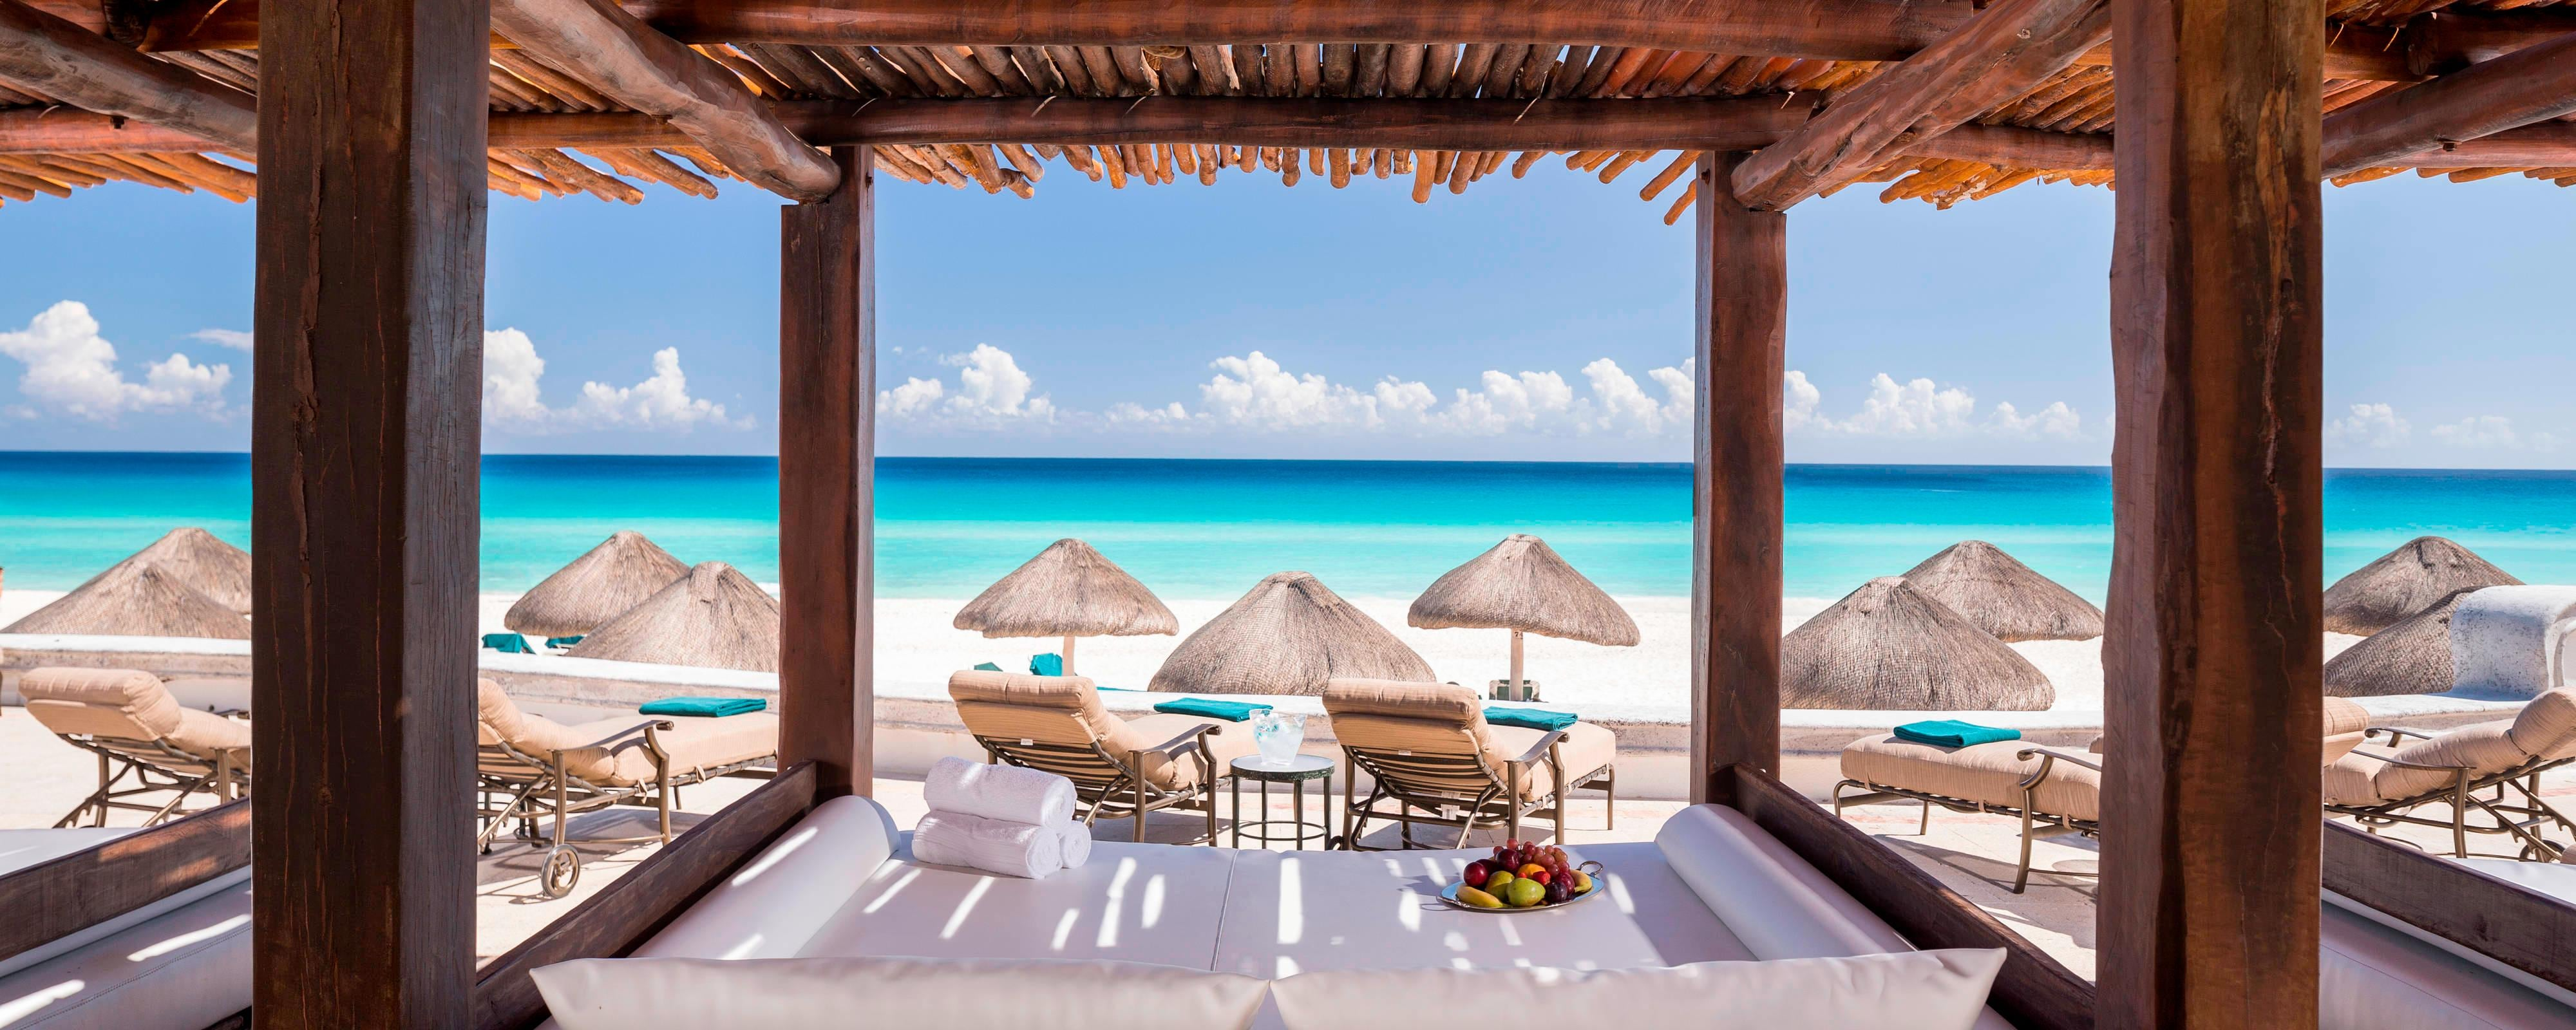 Luxury Cancun Hotels and Beach Resorts  JW Marriott